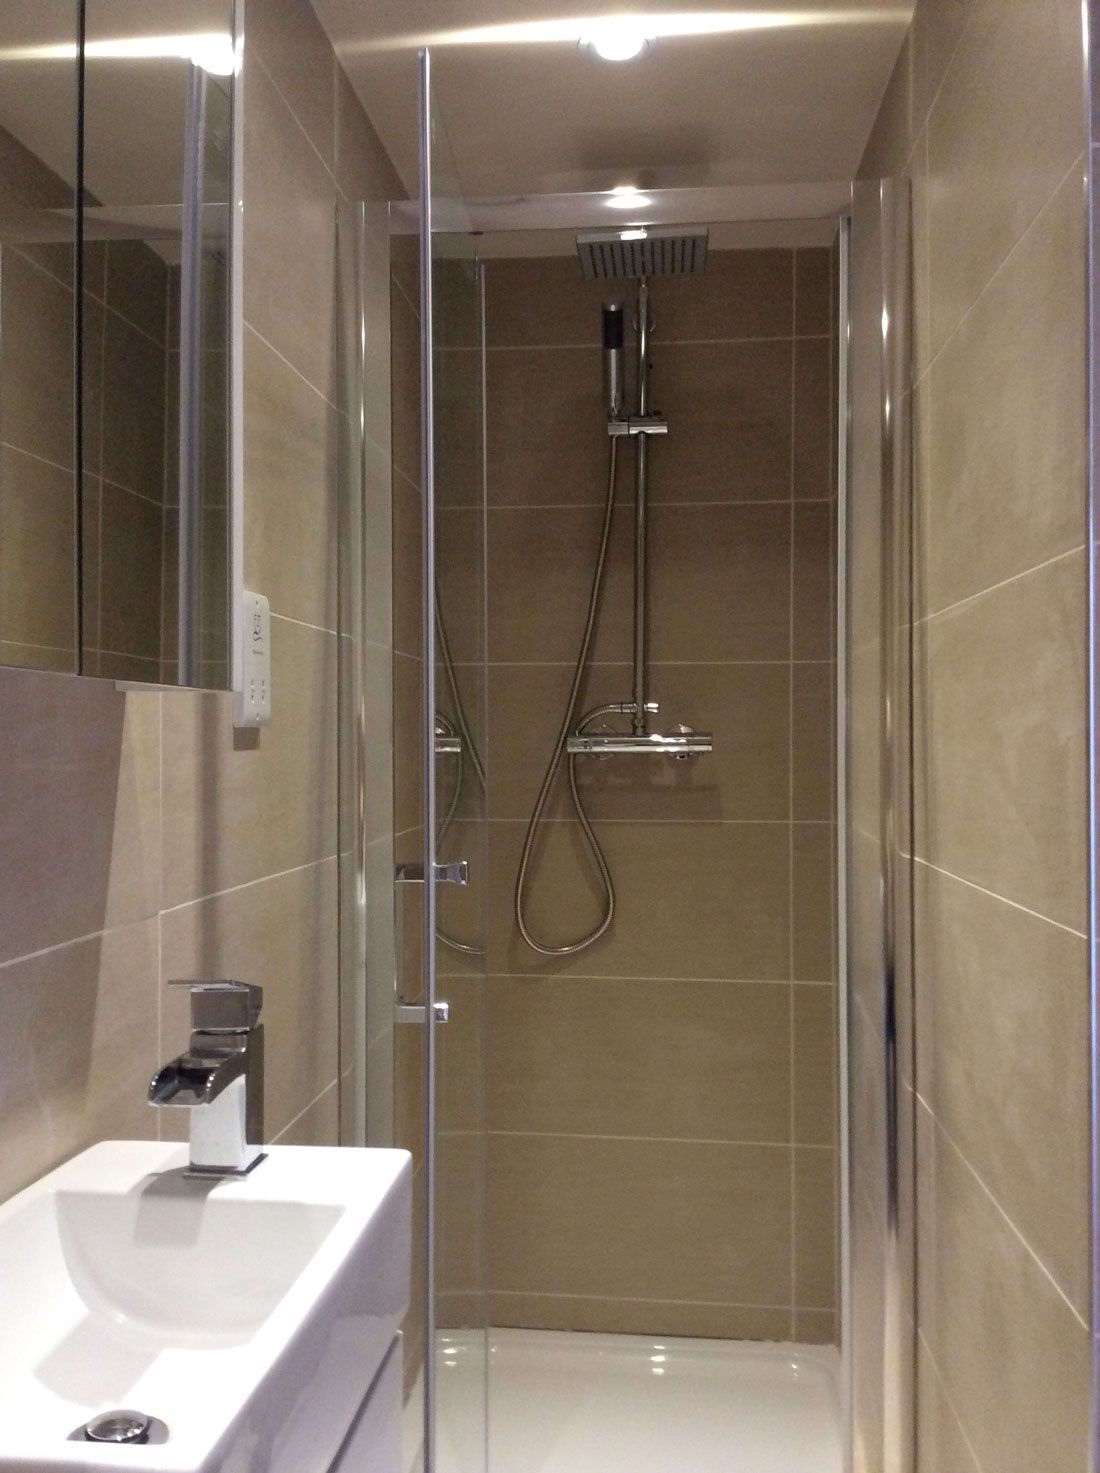 The En Suite Shower Room Is Fully Tiled In Dark Cream Porcelain And Features A Ideas For Small